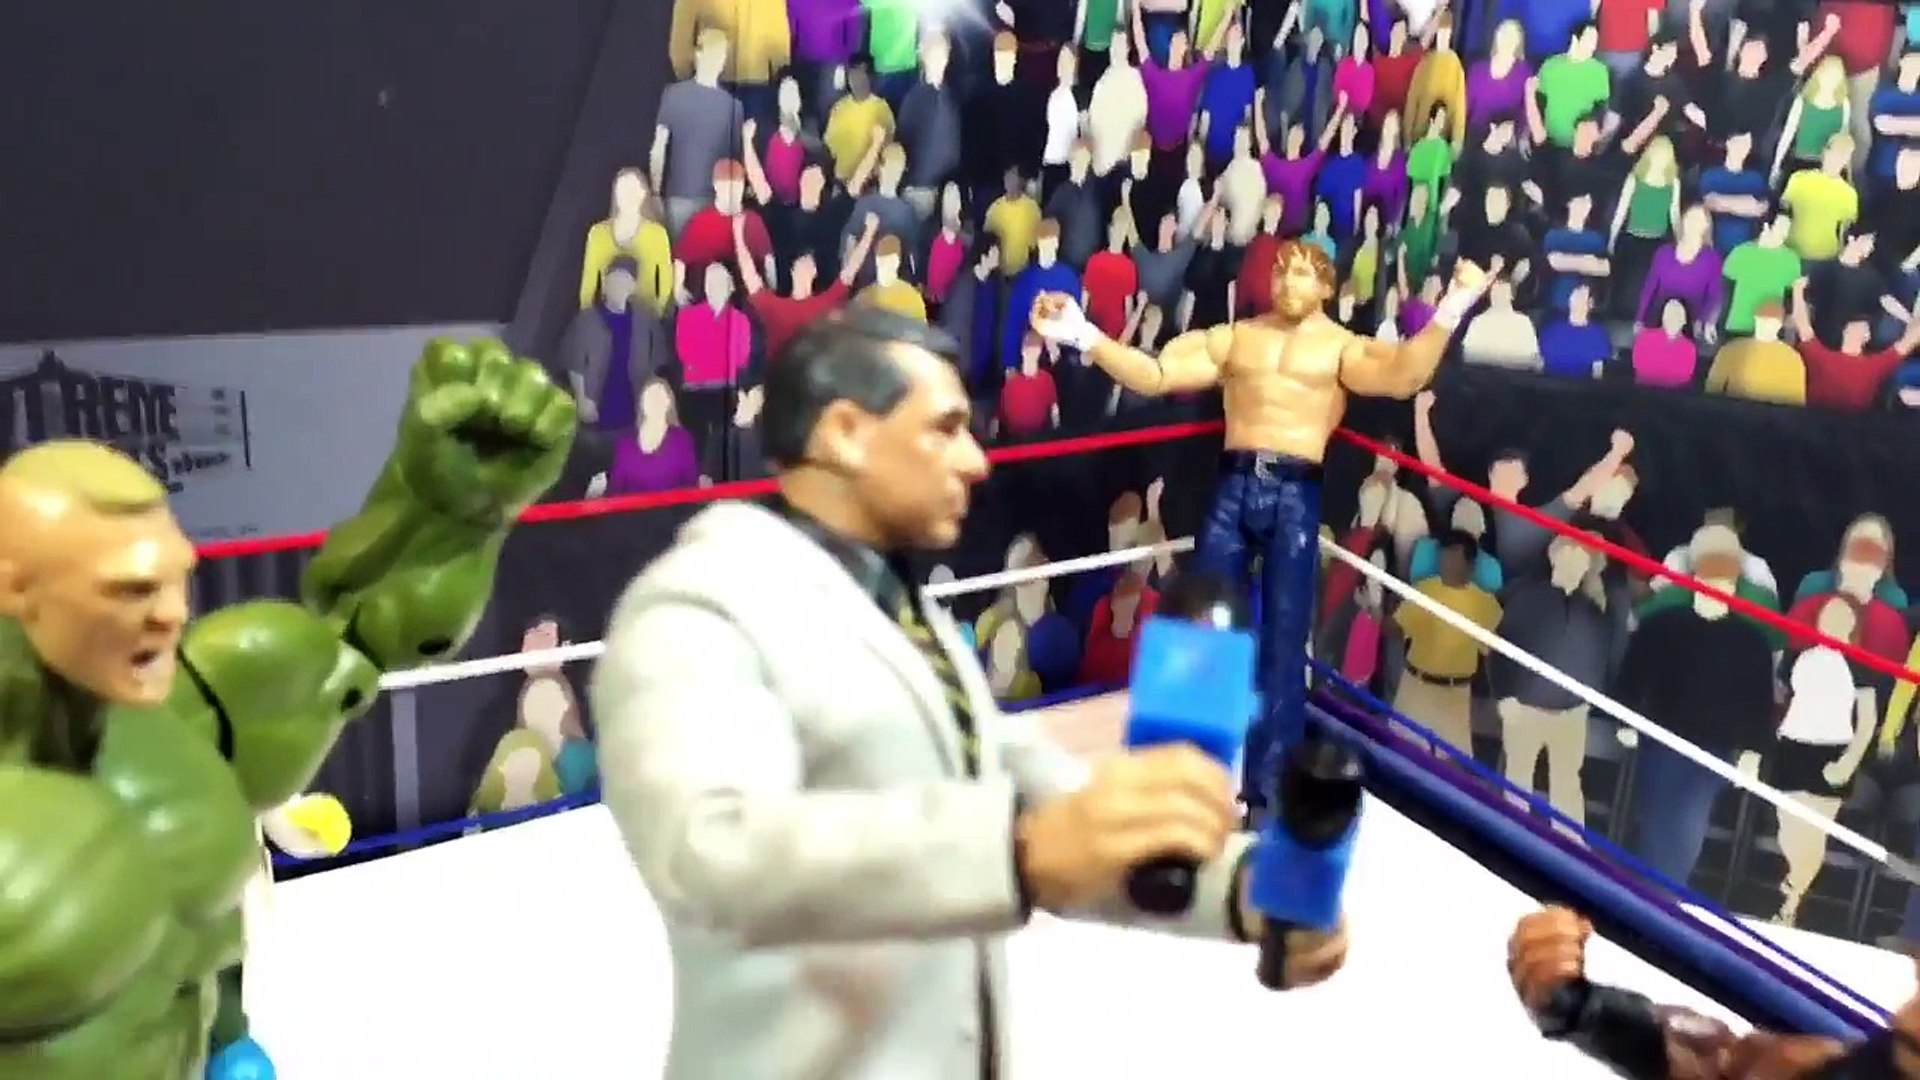 GTS WRESTLING: BROCK FAILS DOPE TEST! WWE Mattel Figure Animation PPV Event!